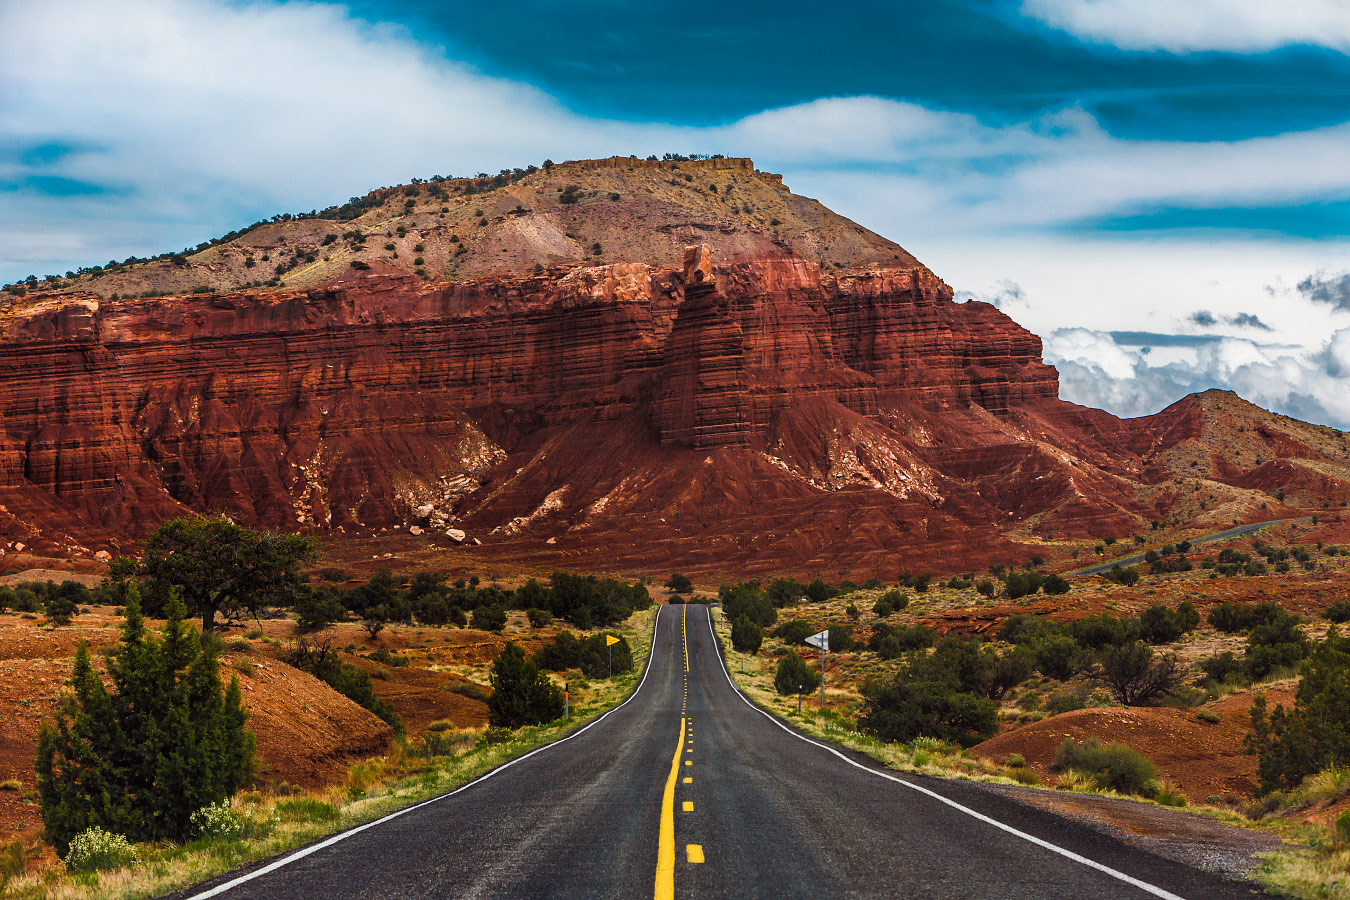 Chimney Rock and Mummy Cliff as seen from Utah State Route 24.